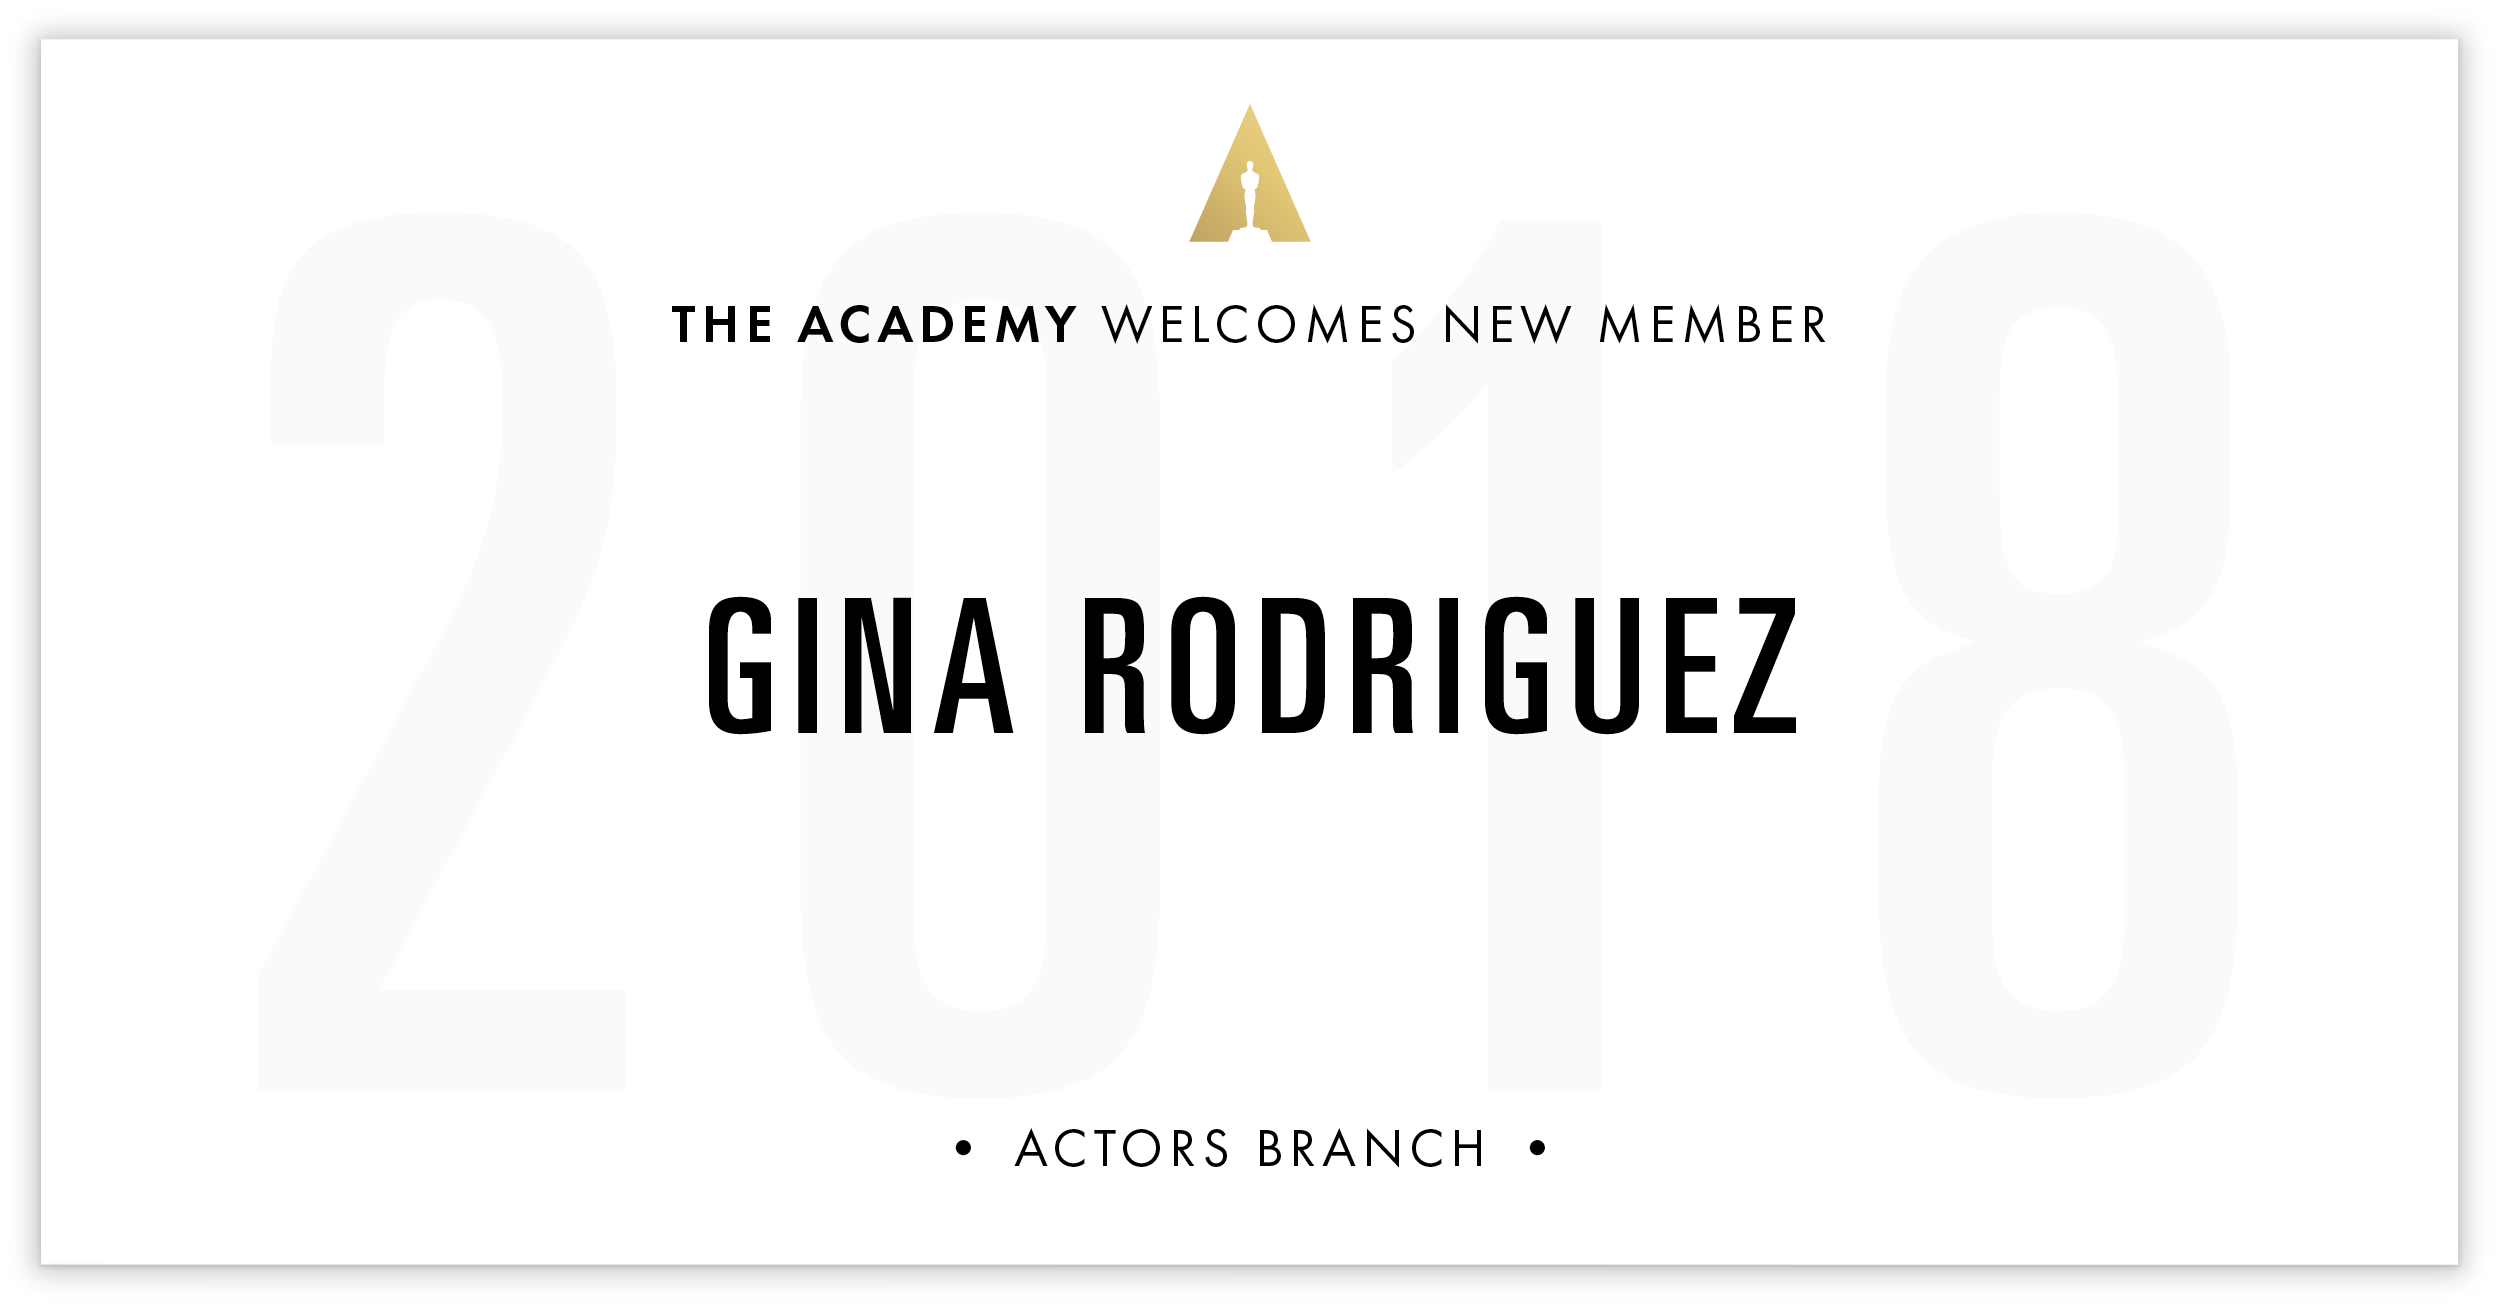 Gina Rodriguez is invited!